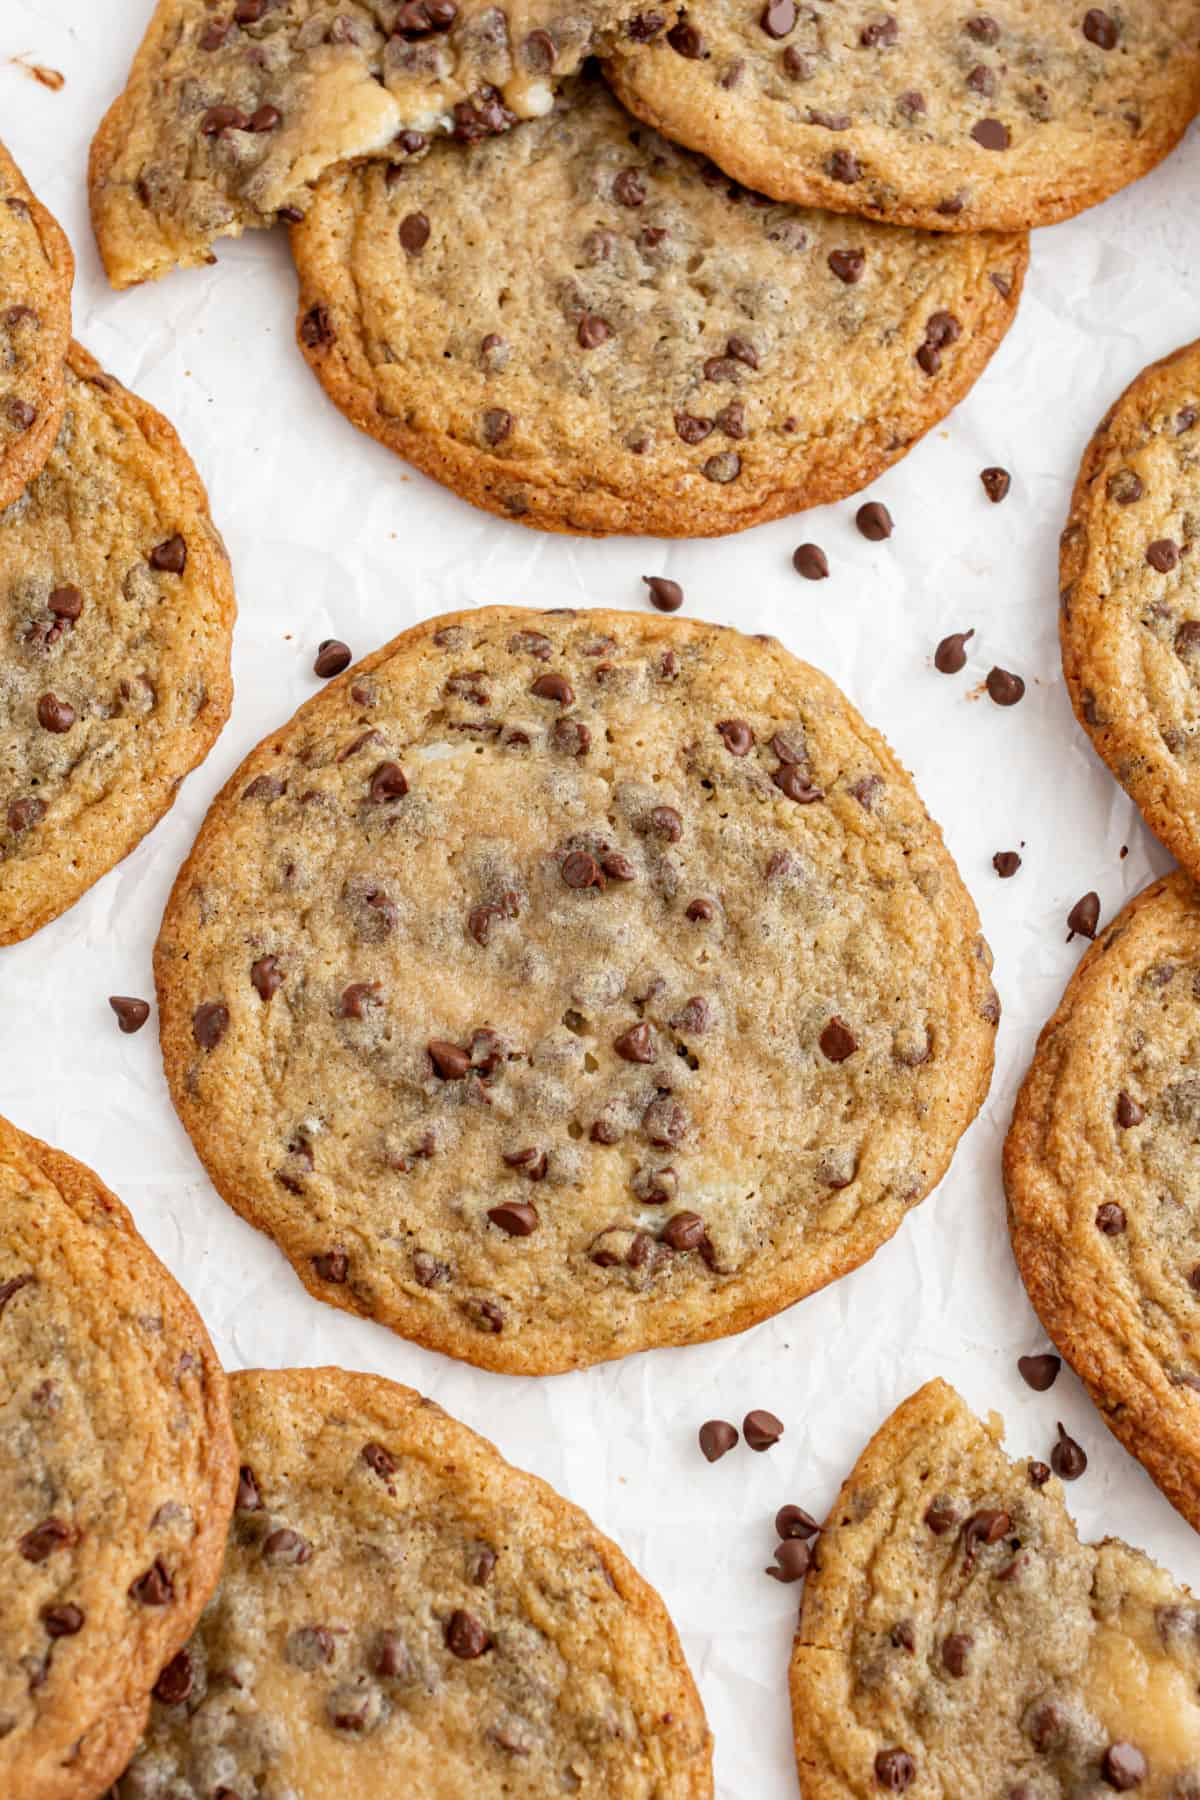 Chocolate chip cheesecake cookies on parchment paper.